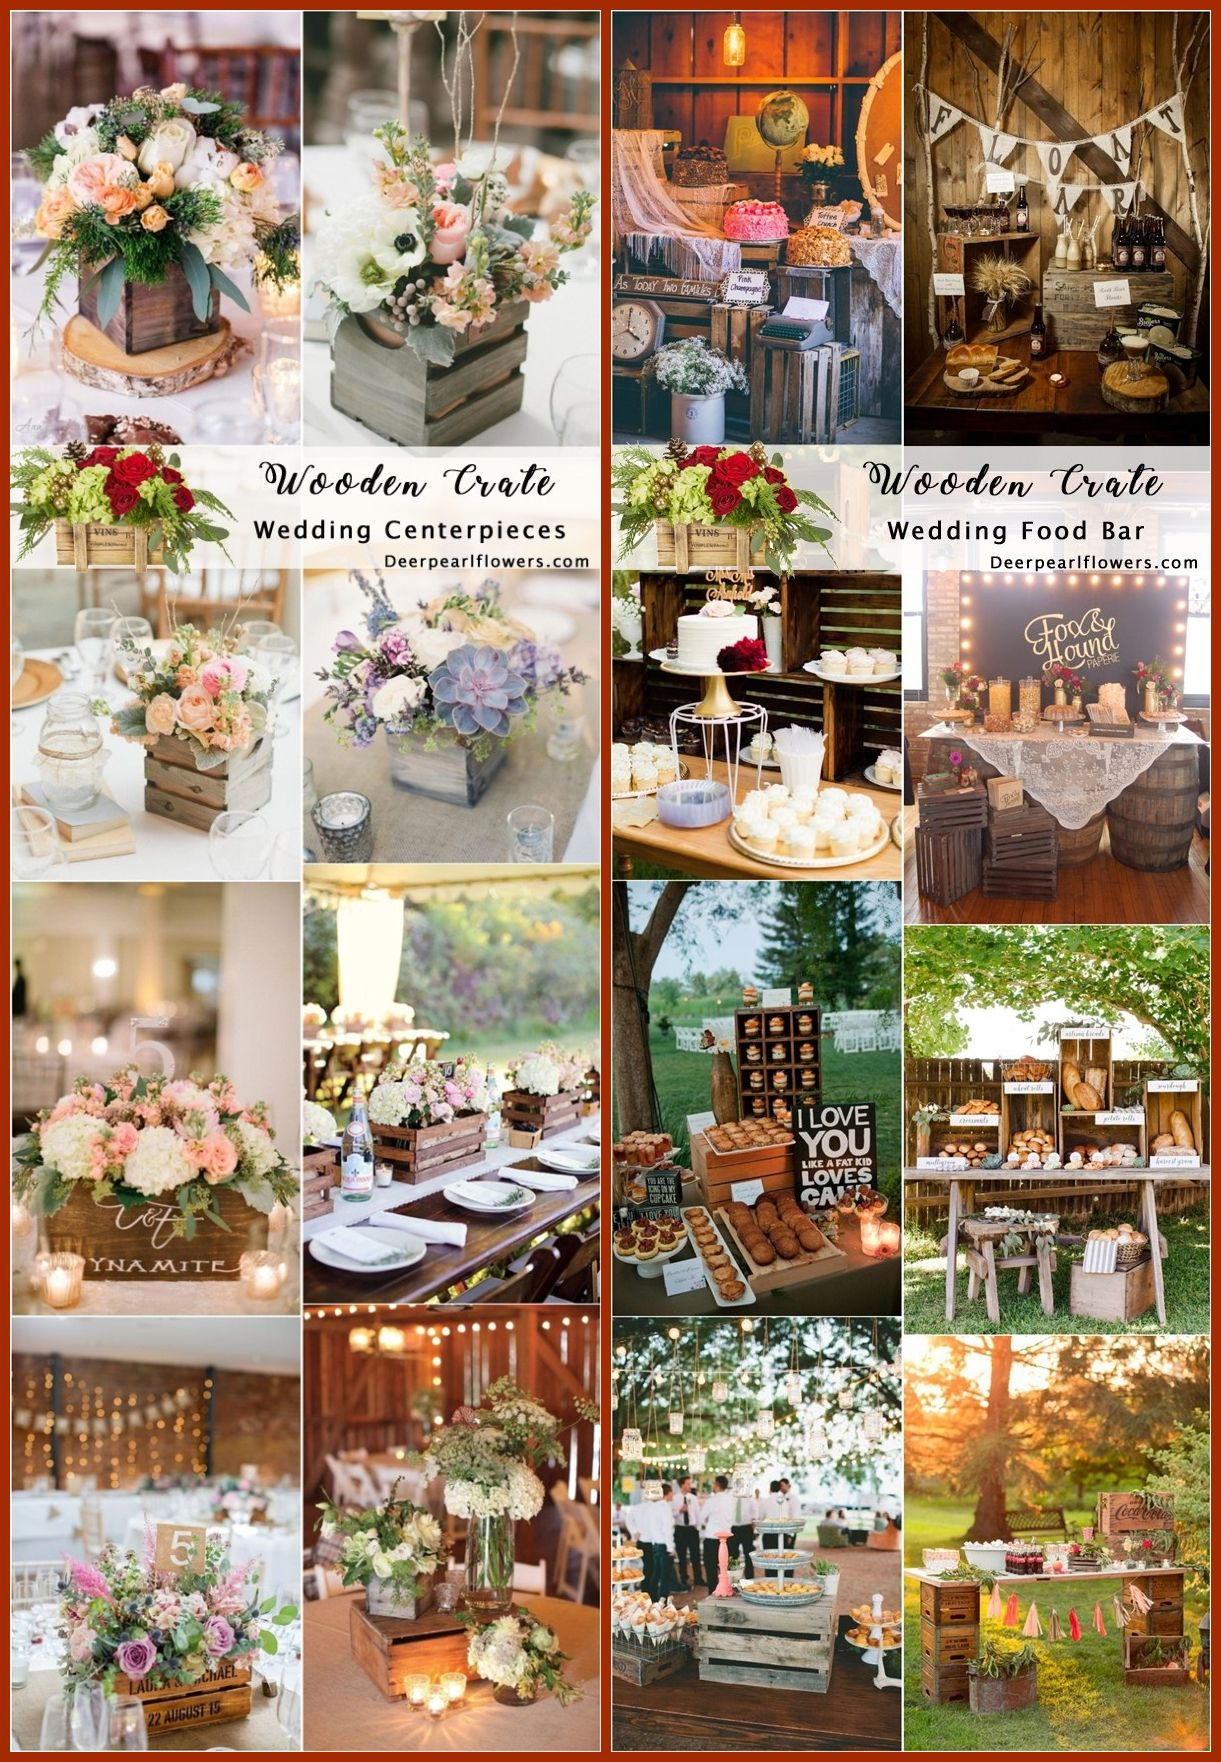 Wedding decorations shabby chic october 2018 Rustic Woodsy Wedding Trend  Wooden Crates  Woodsy wedding